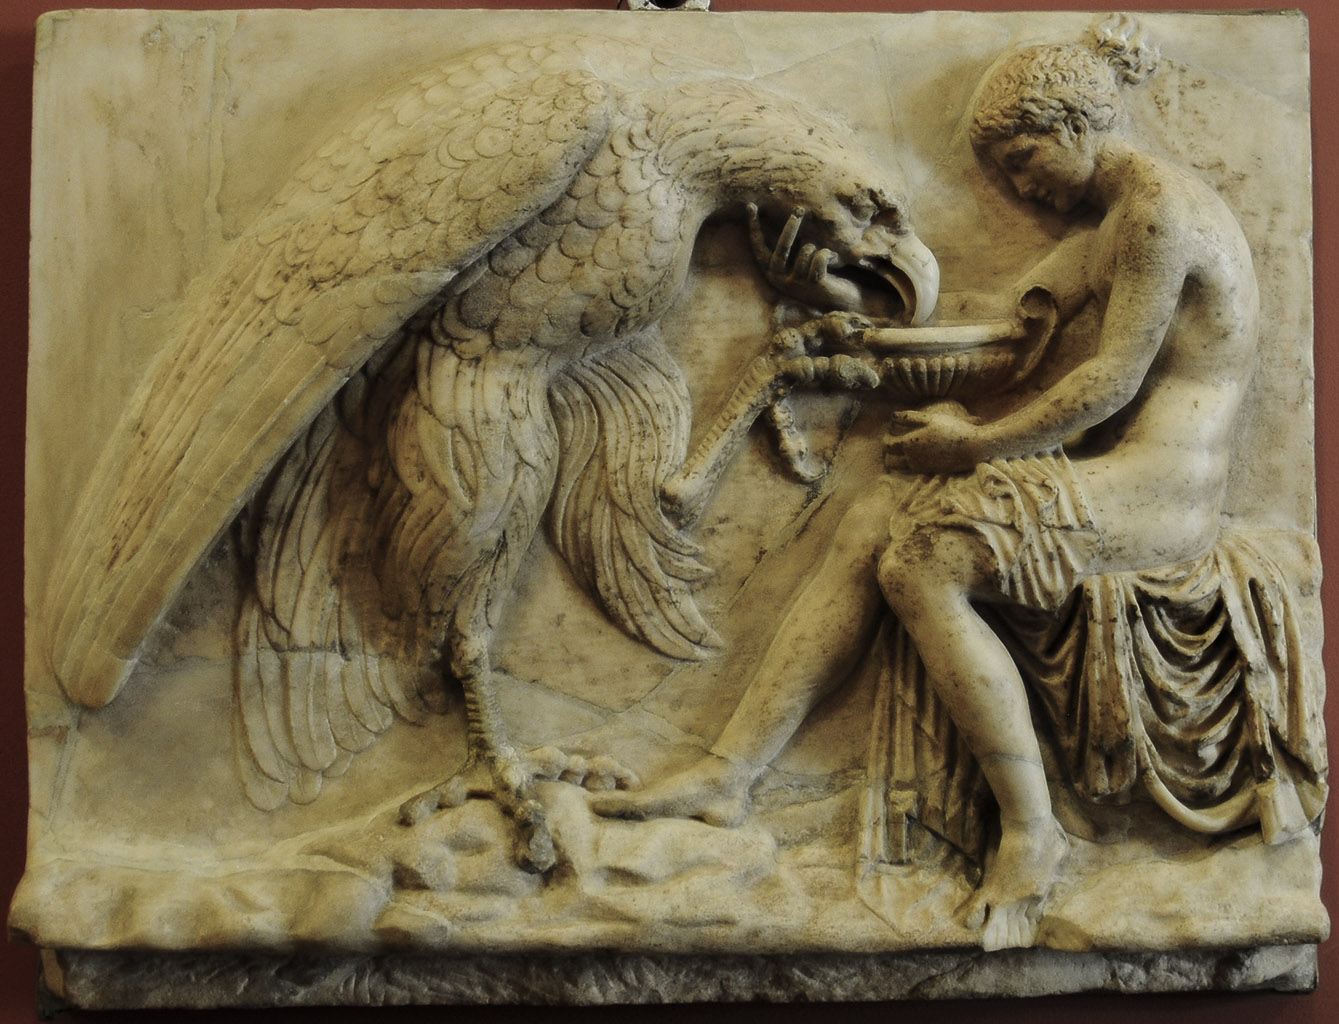 Ganymede feeding the eagle. Marble. Roman copy of late 1st cent. BCE after a Greek original. 58 × 44 cm. Inv. No. A. 195. Saint Petersburg, The State Hermitage Museum